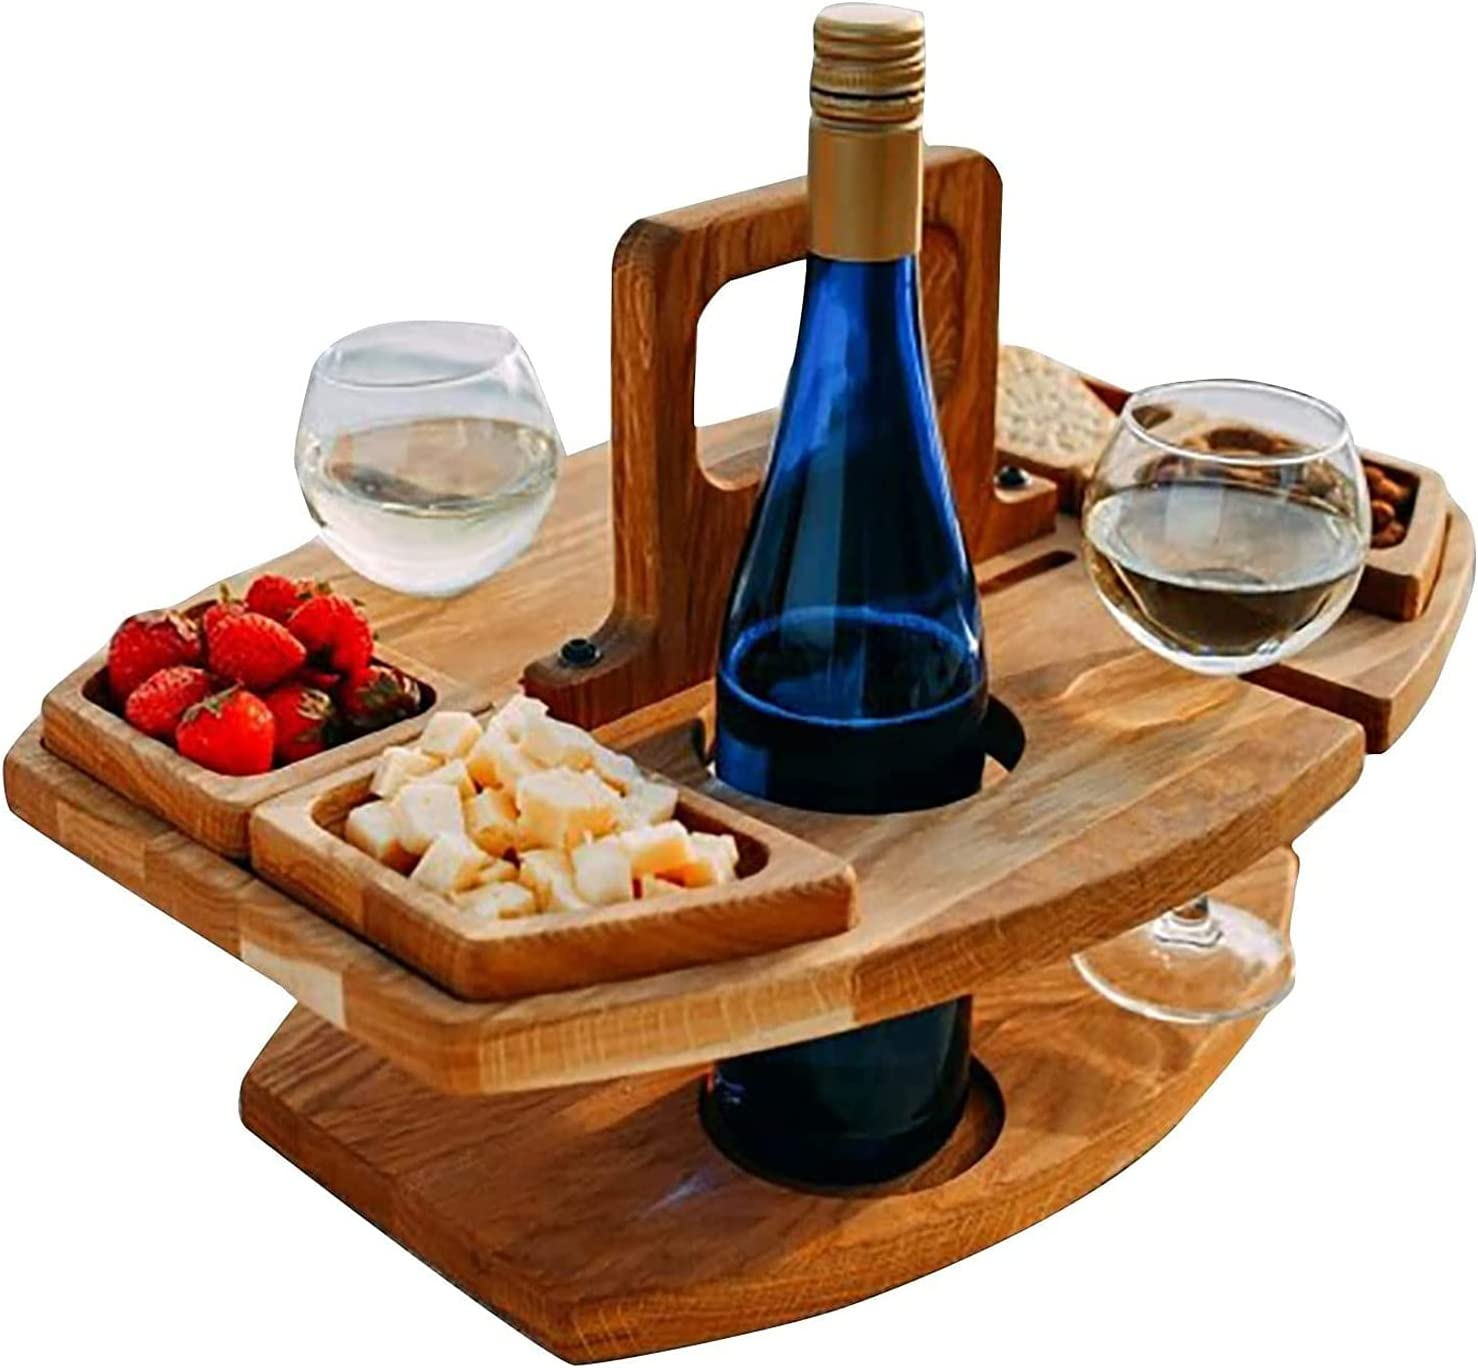 ZRXRY Outdoor Great interest Picnic Popular overseas Wine Glas with Table Foldable